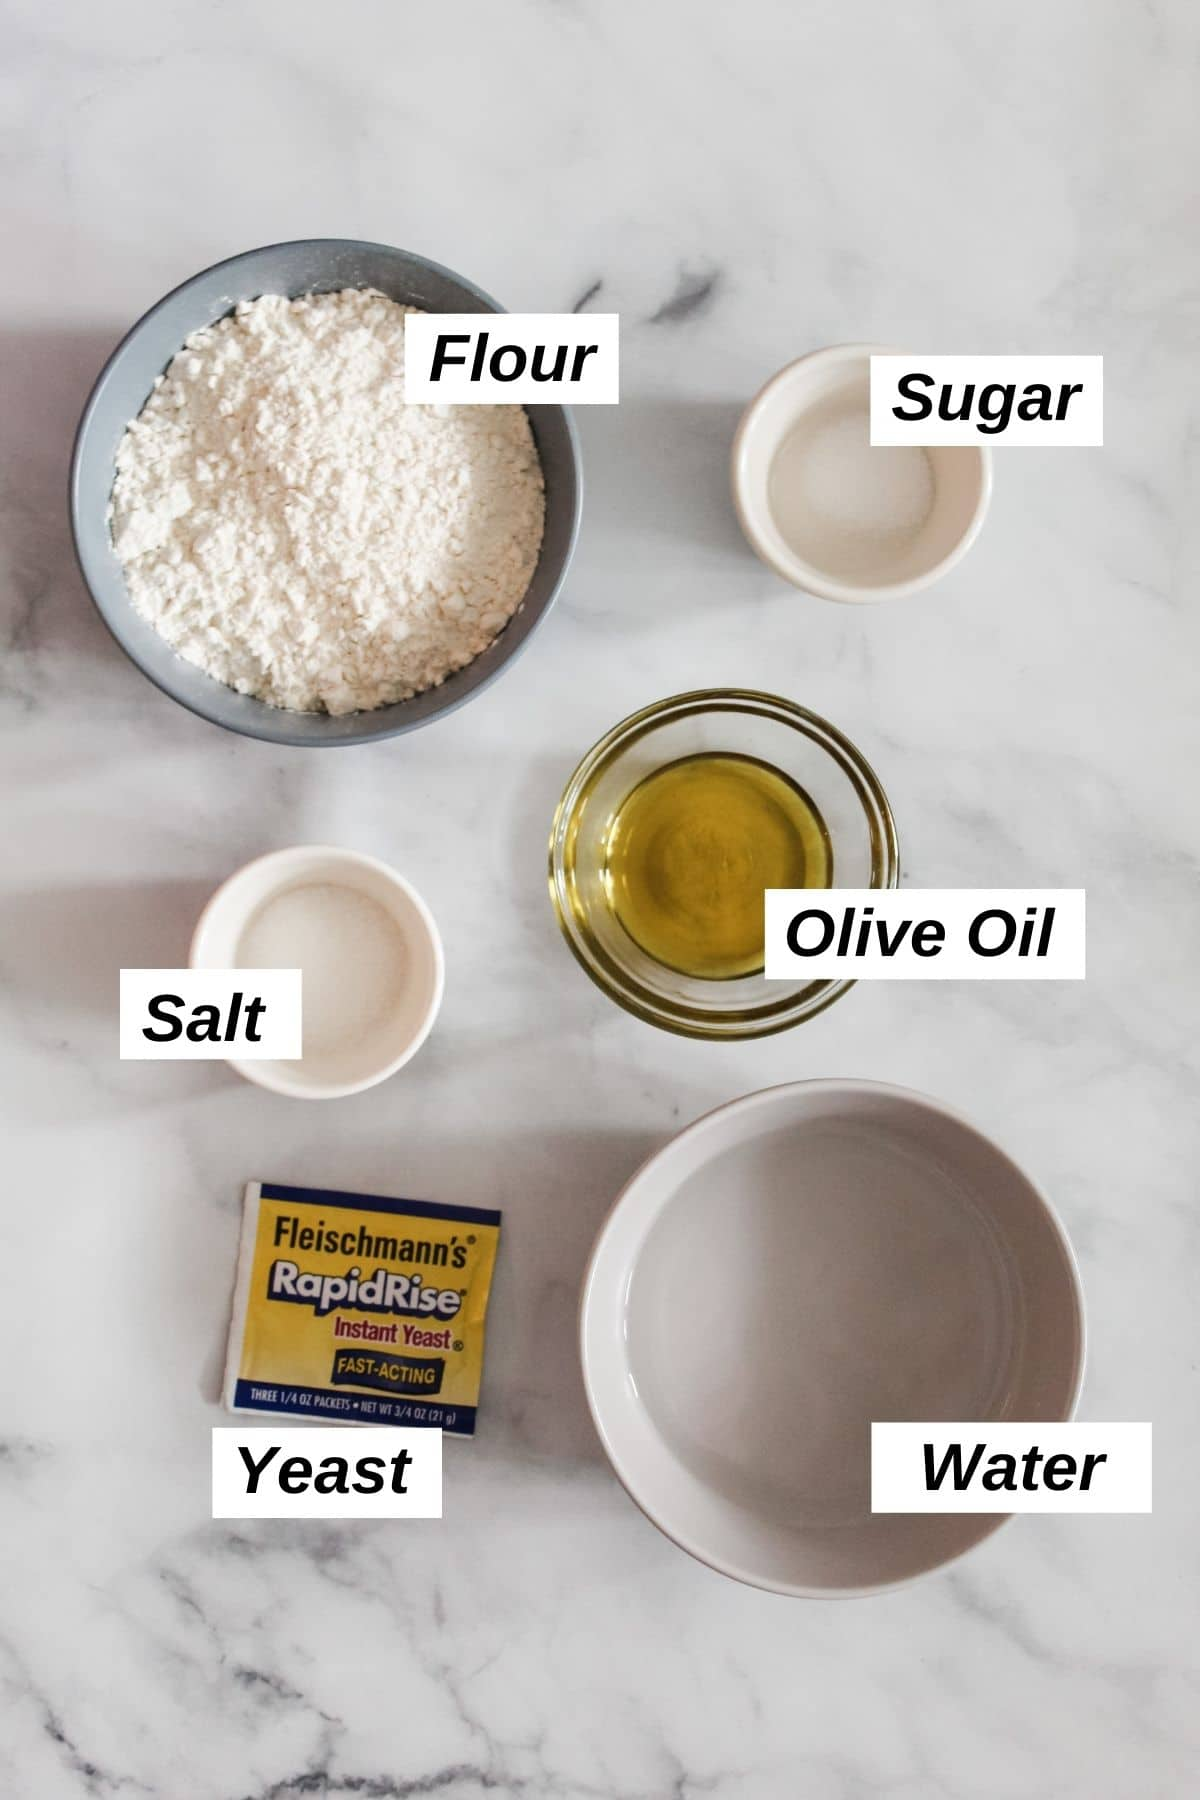 individual ingredients for pizza dough in little bowls including flour, sugar, salt, olive oil, water, and yeast